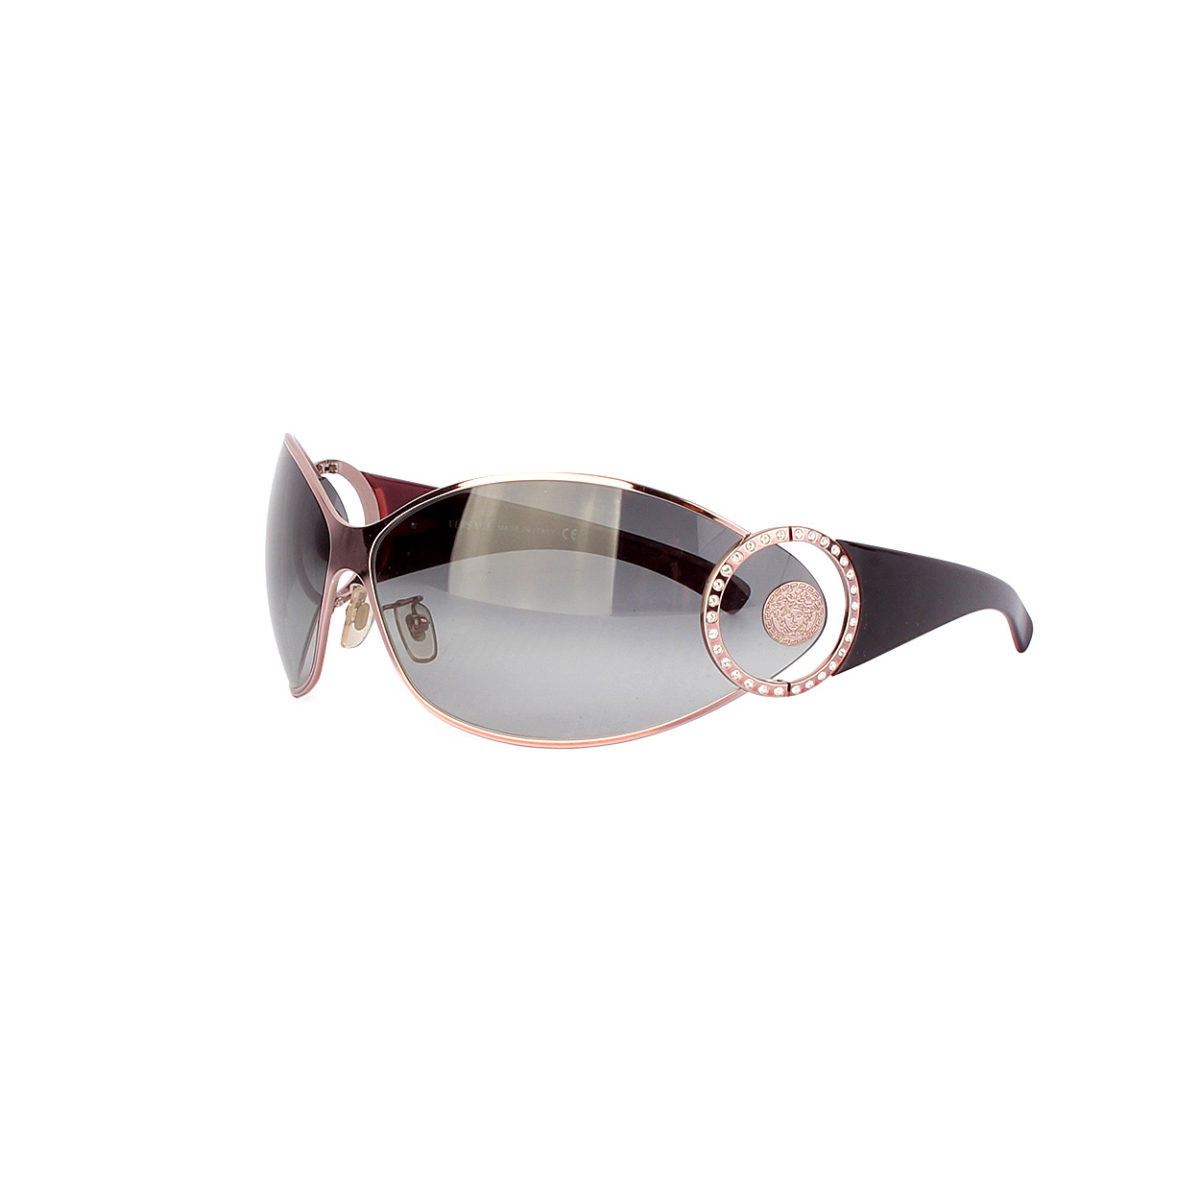 Versace Sunglasses Black Pink Frames With Crystals 2064 B Luxity